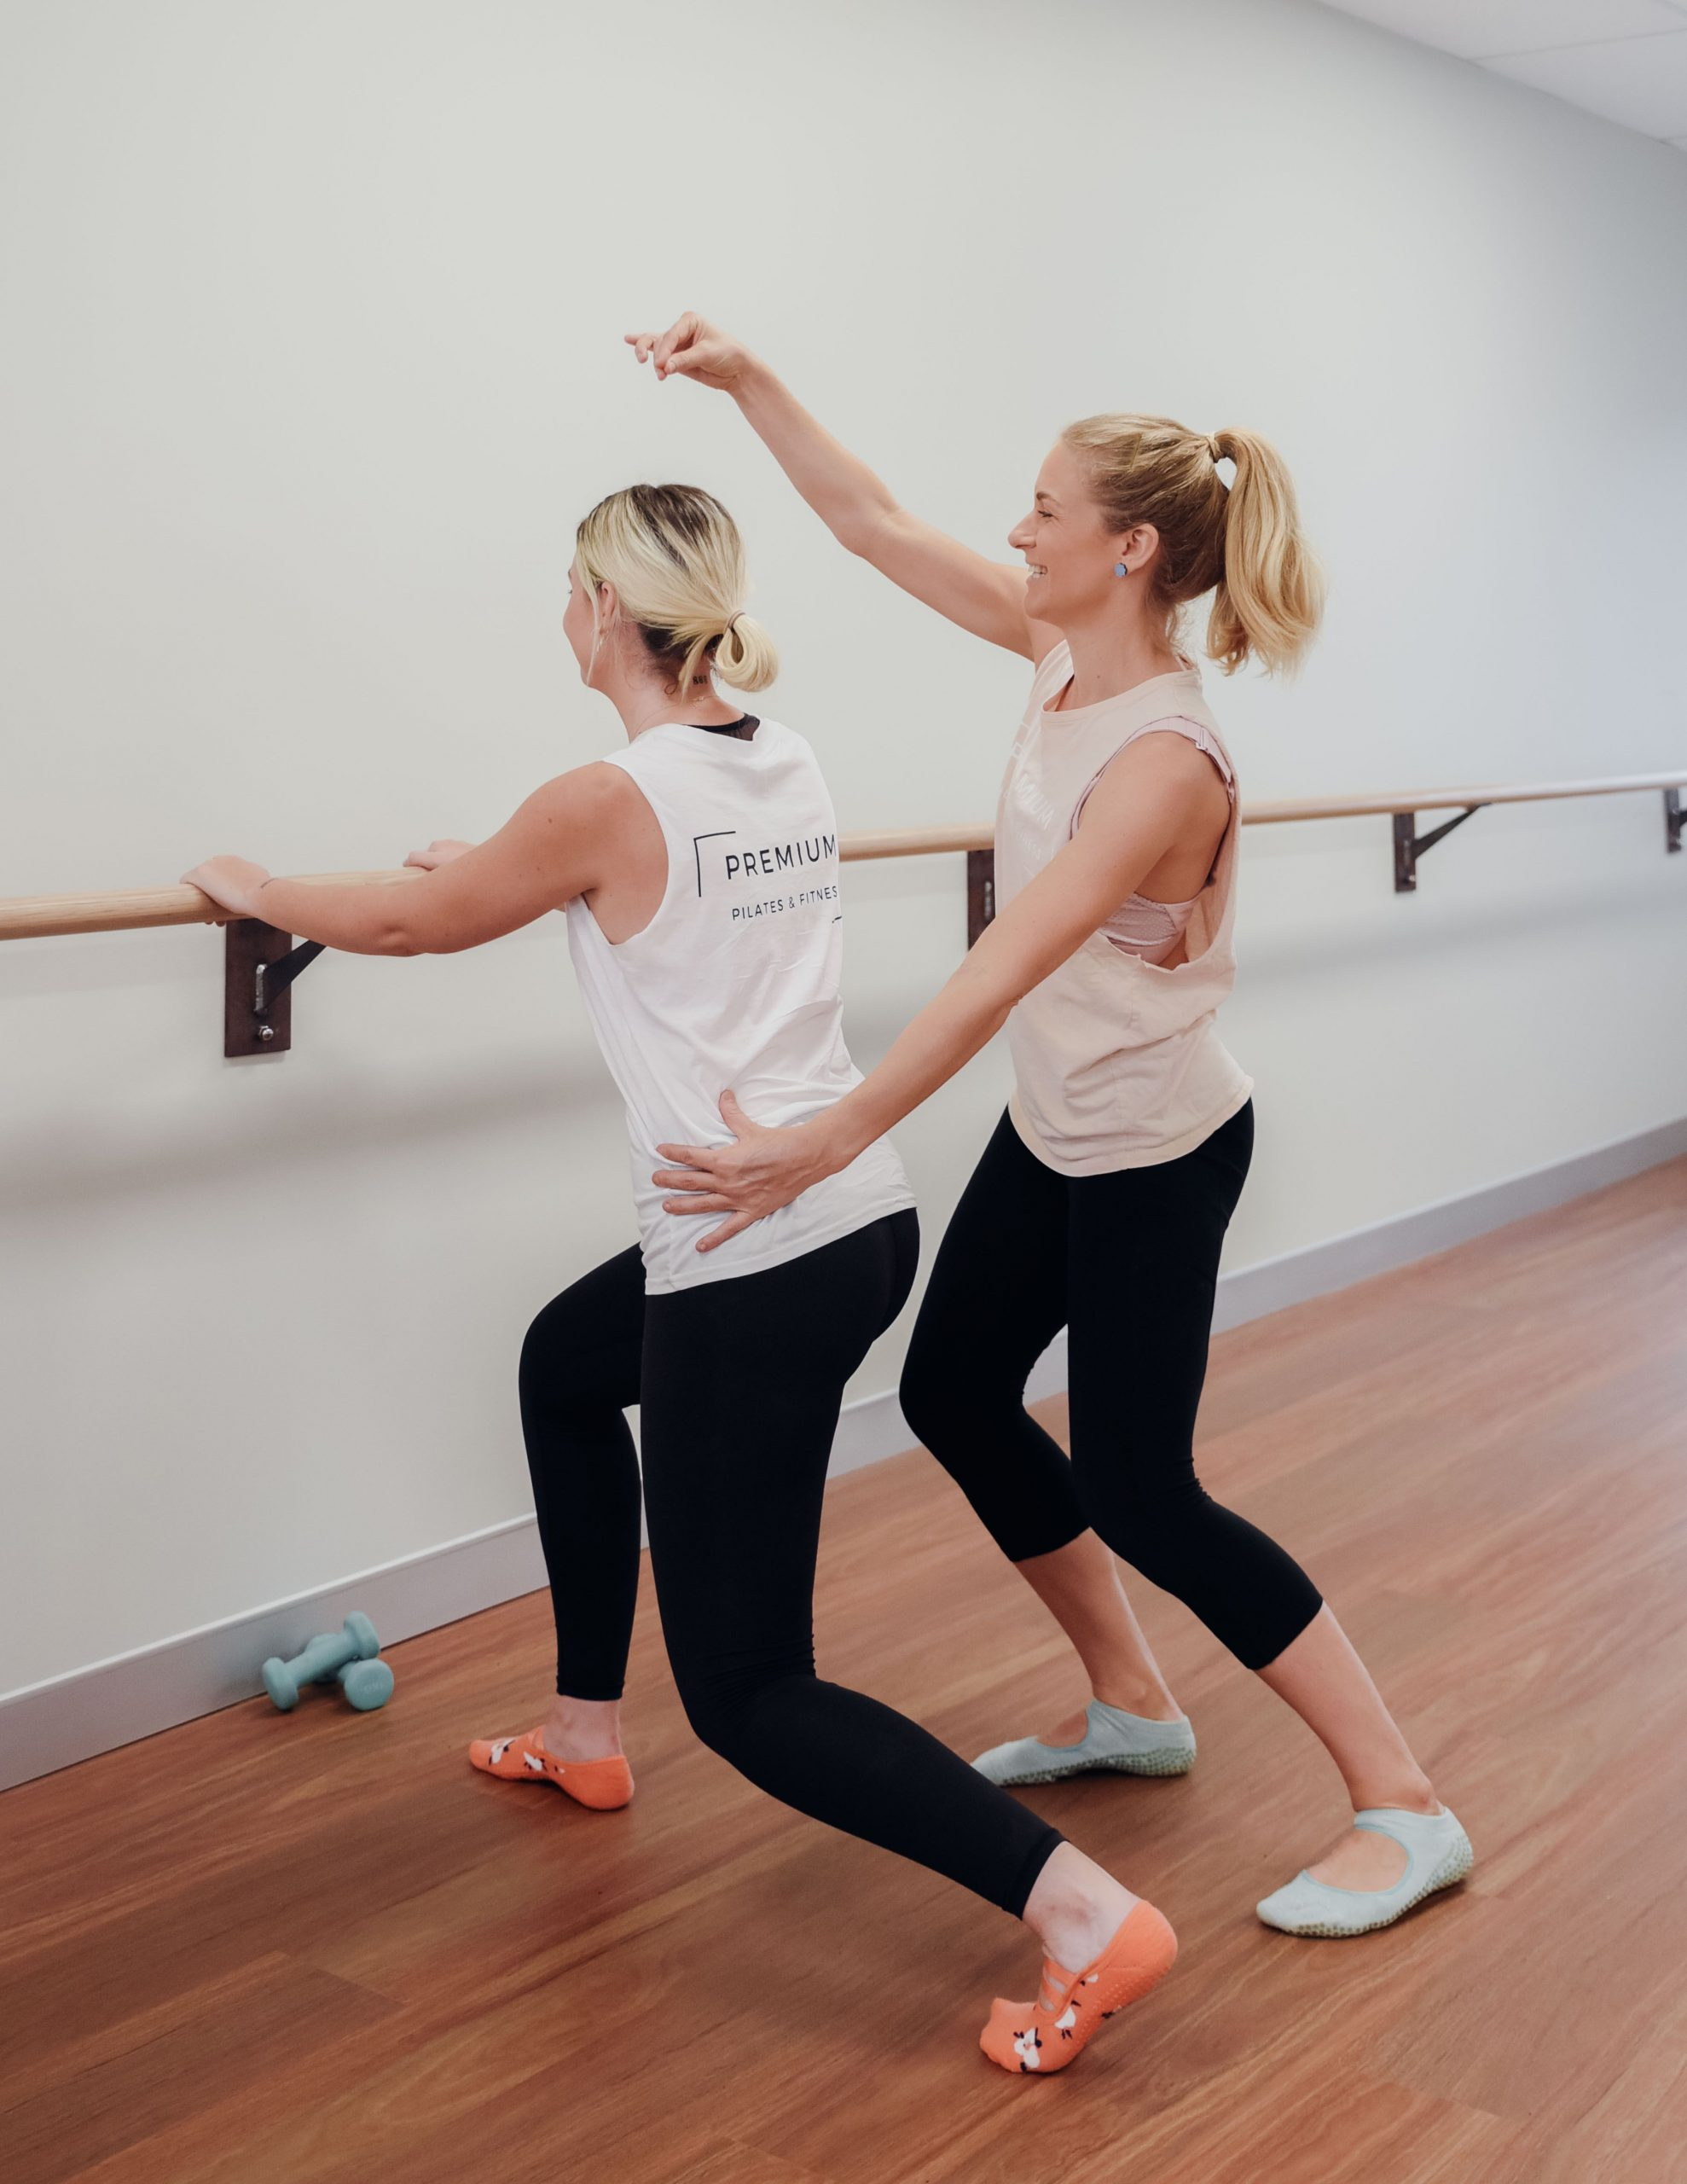 Pilates improves posture by lengthening the spine